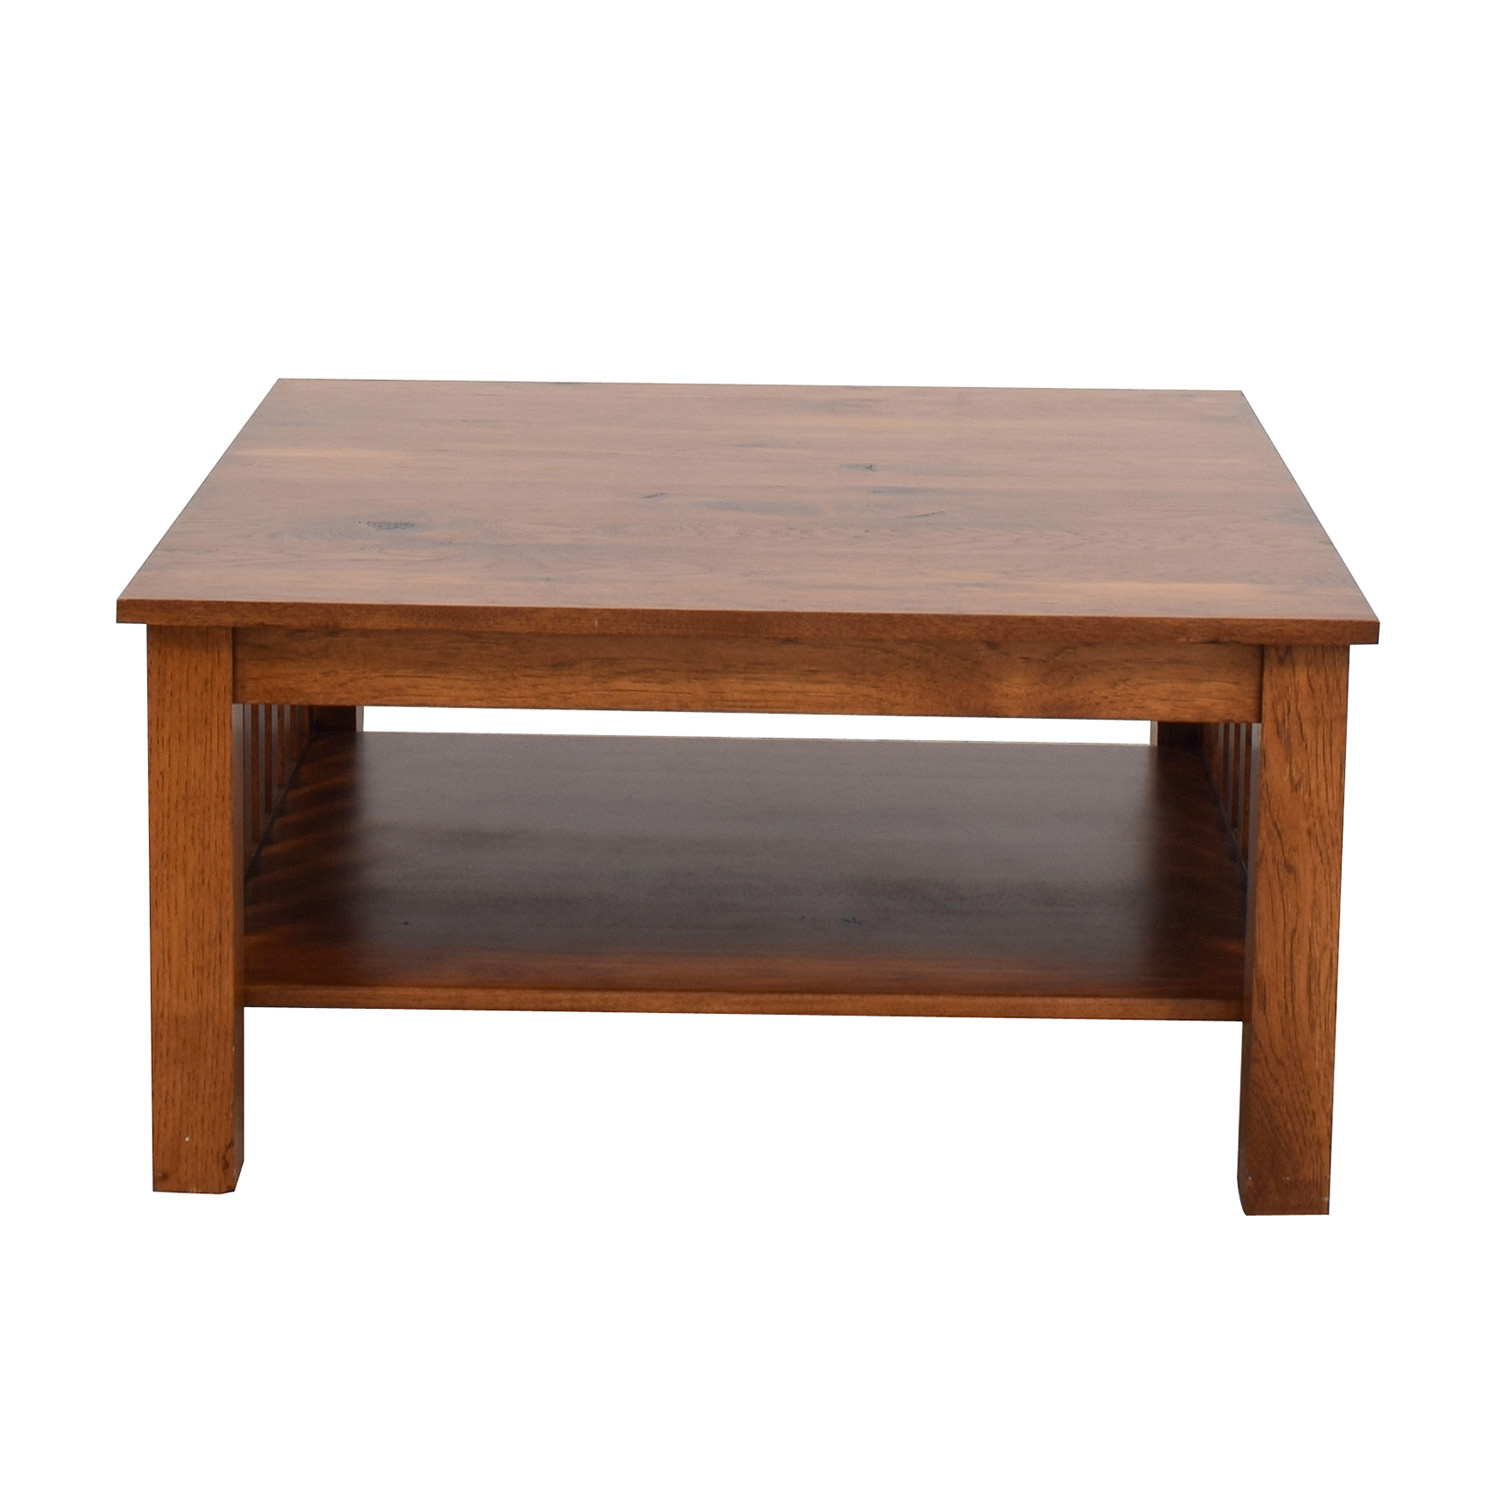 DutchCrafters DutchCrafters Square Coffee Table coupon